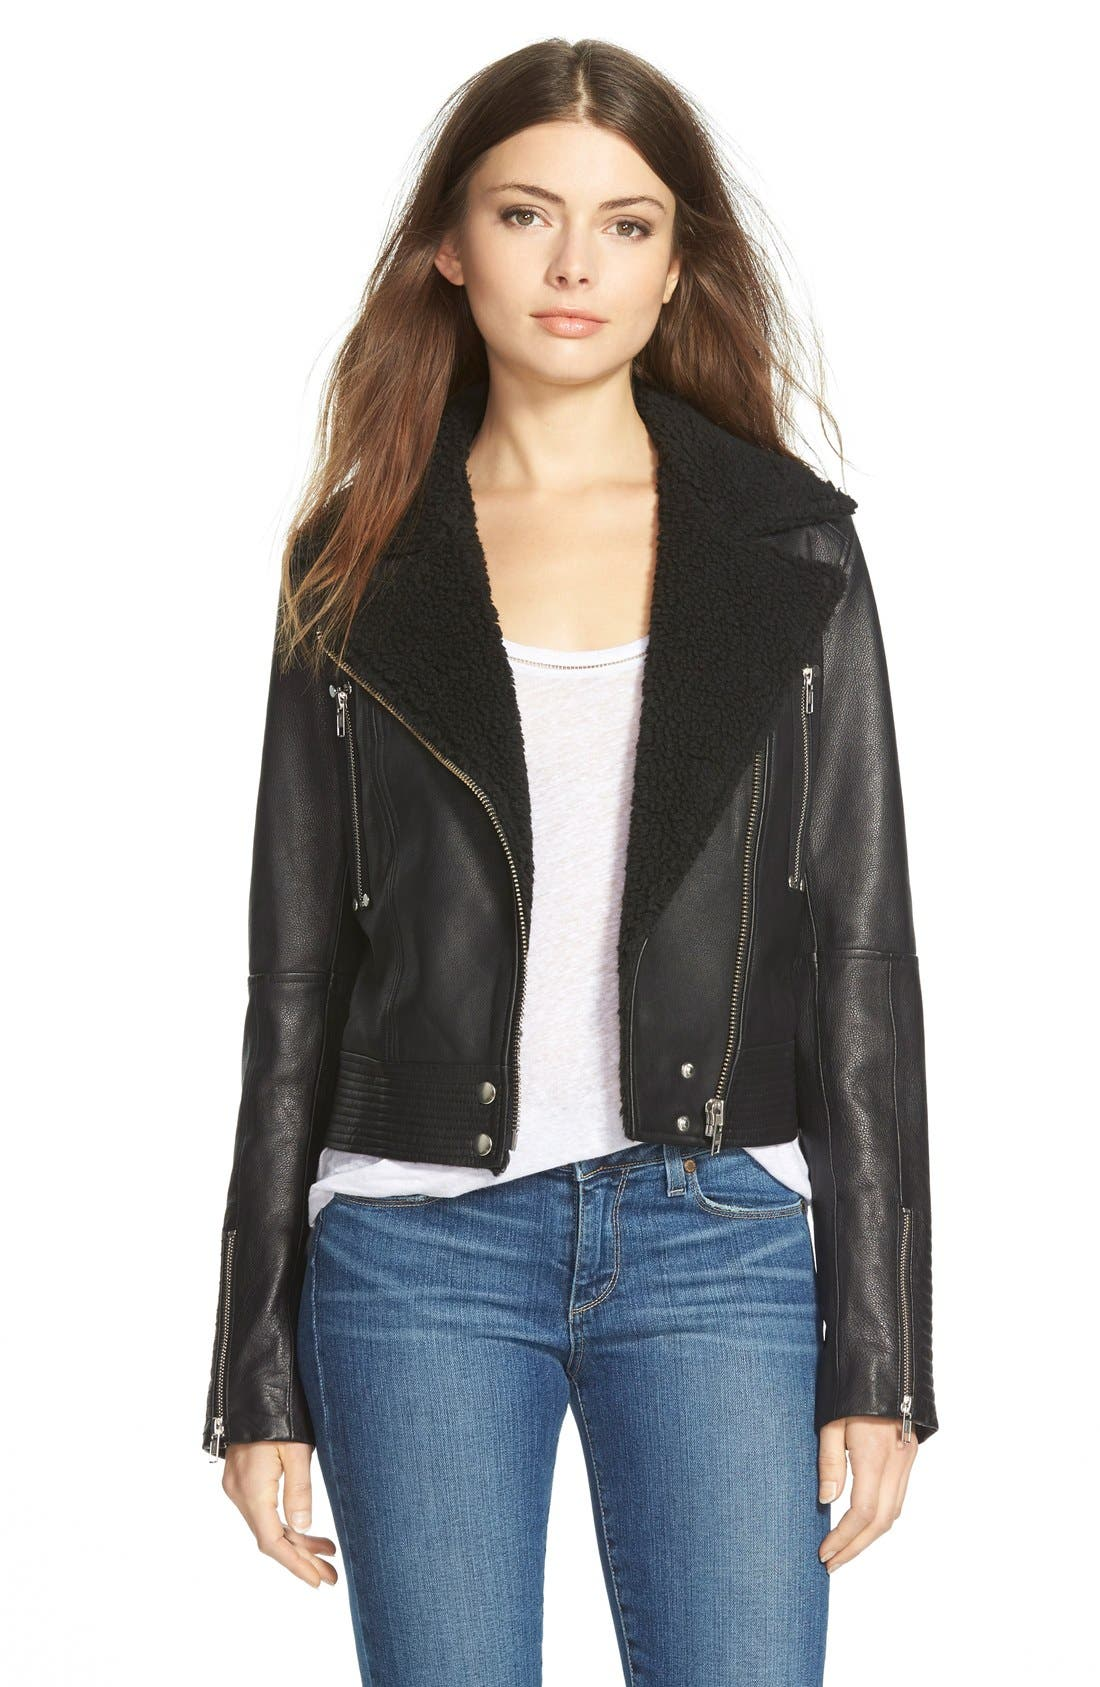 Paige Denim 'Rooney' Leather Jacket with Faux Shearling Collar